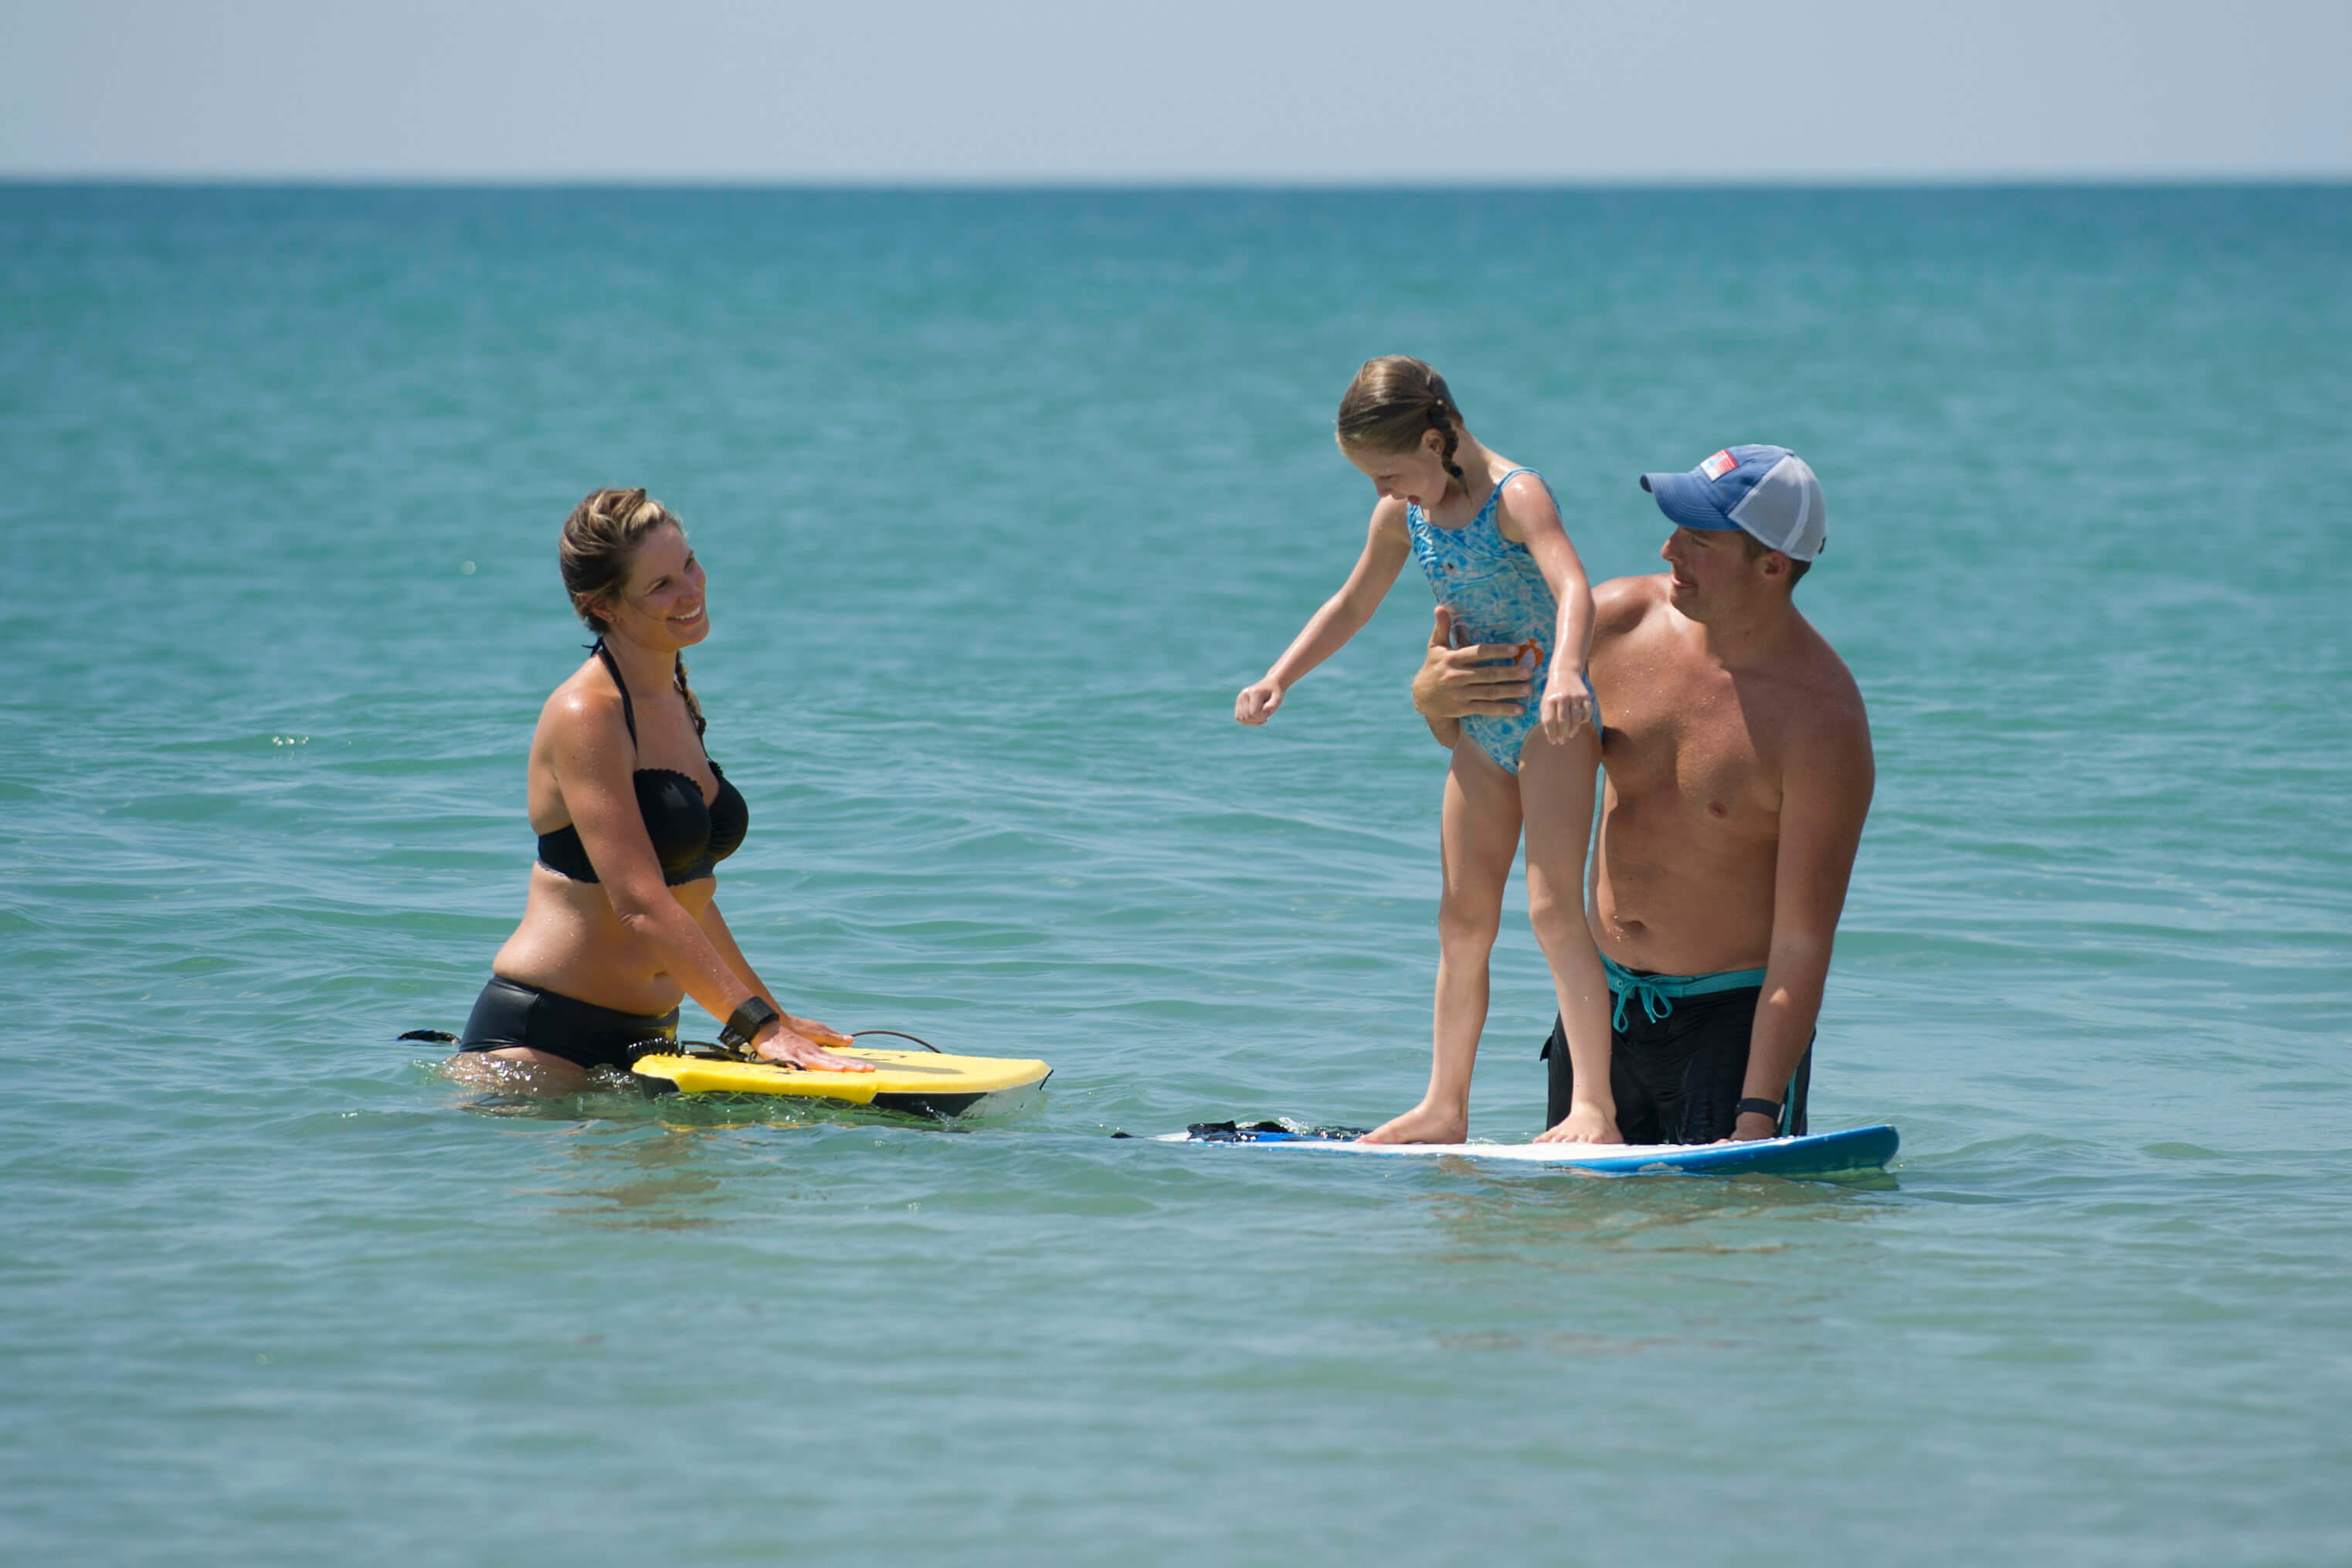 5 Things Your Kids Must See and Do in Emerald Isle - Surfingof